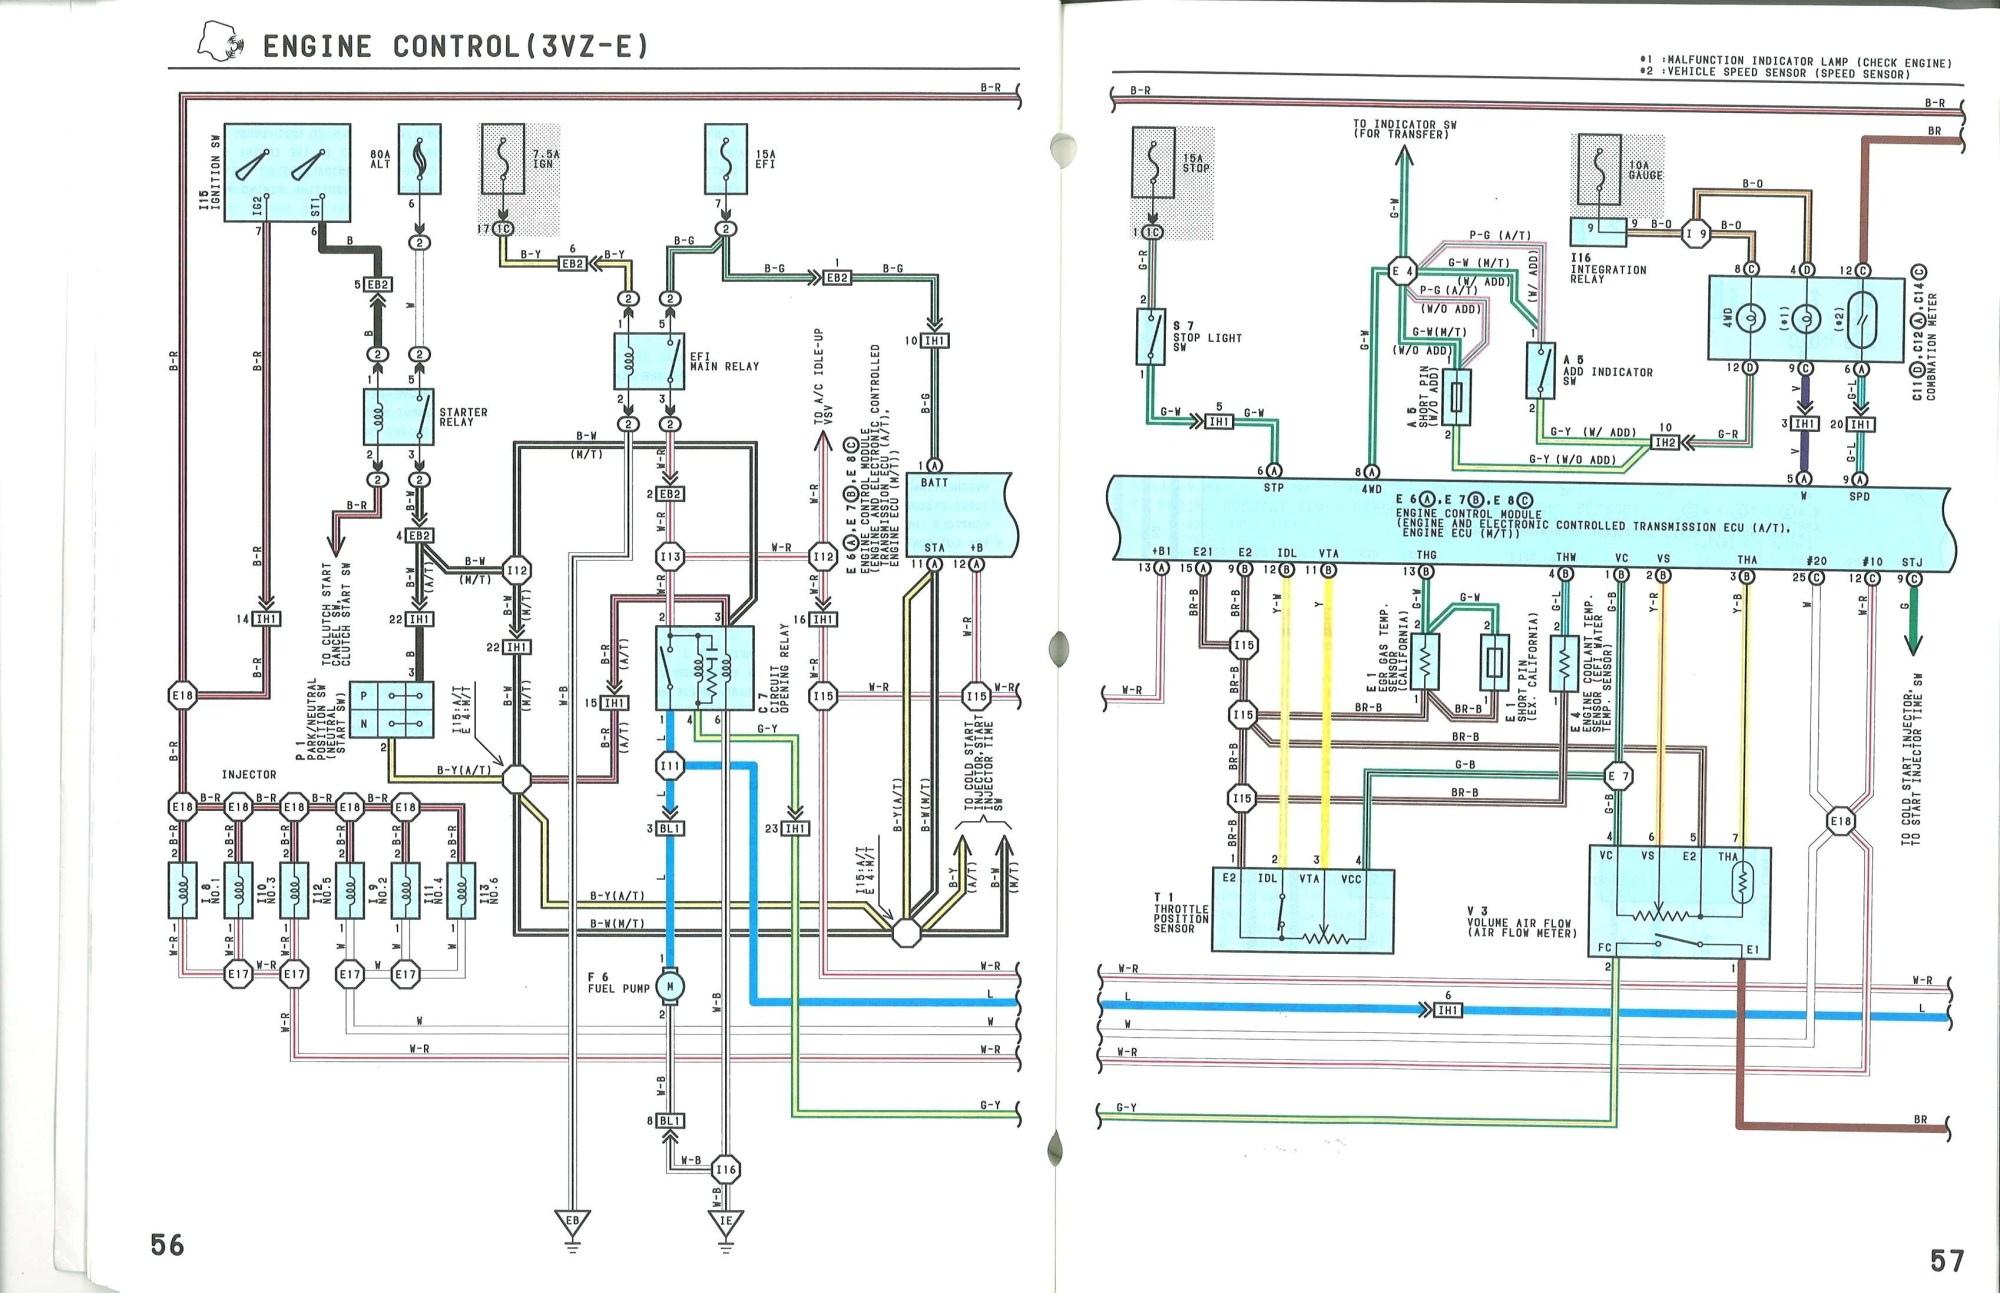 hight resolution of 1989 toyota wiring harness diagram wiring diagram mega 1989 toyota wiring harness diagram